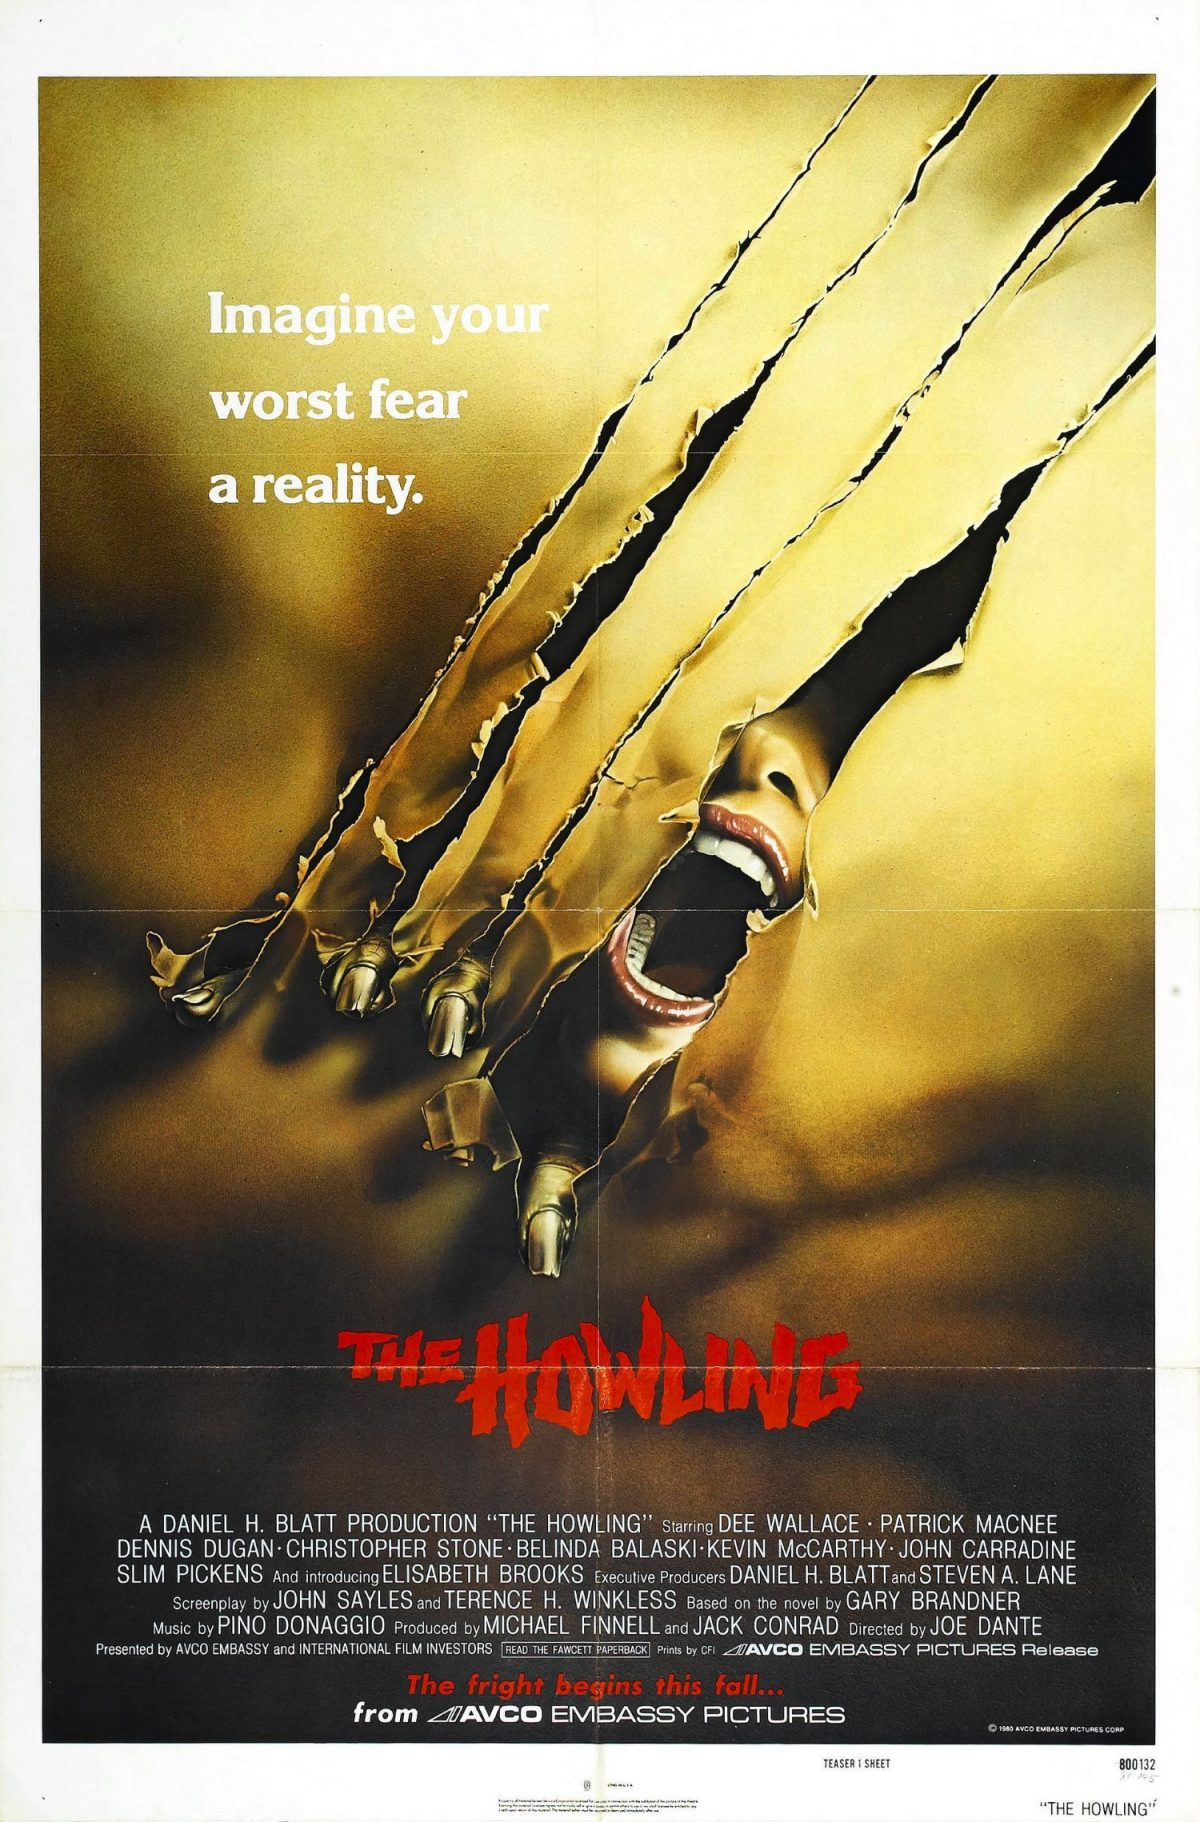 The Howling, film, horror, Joe Dante